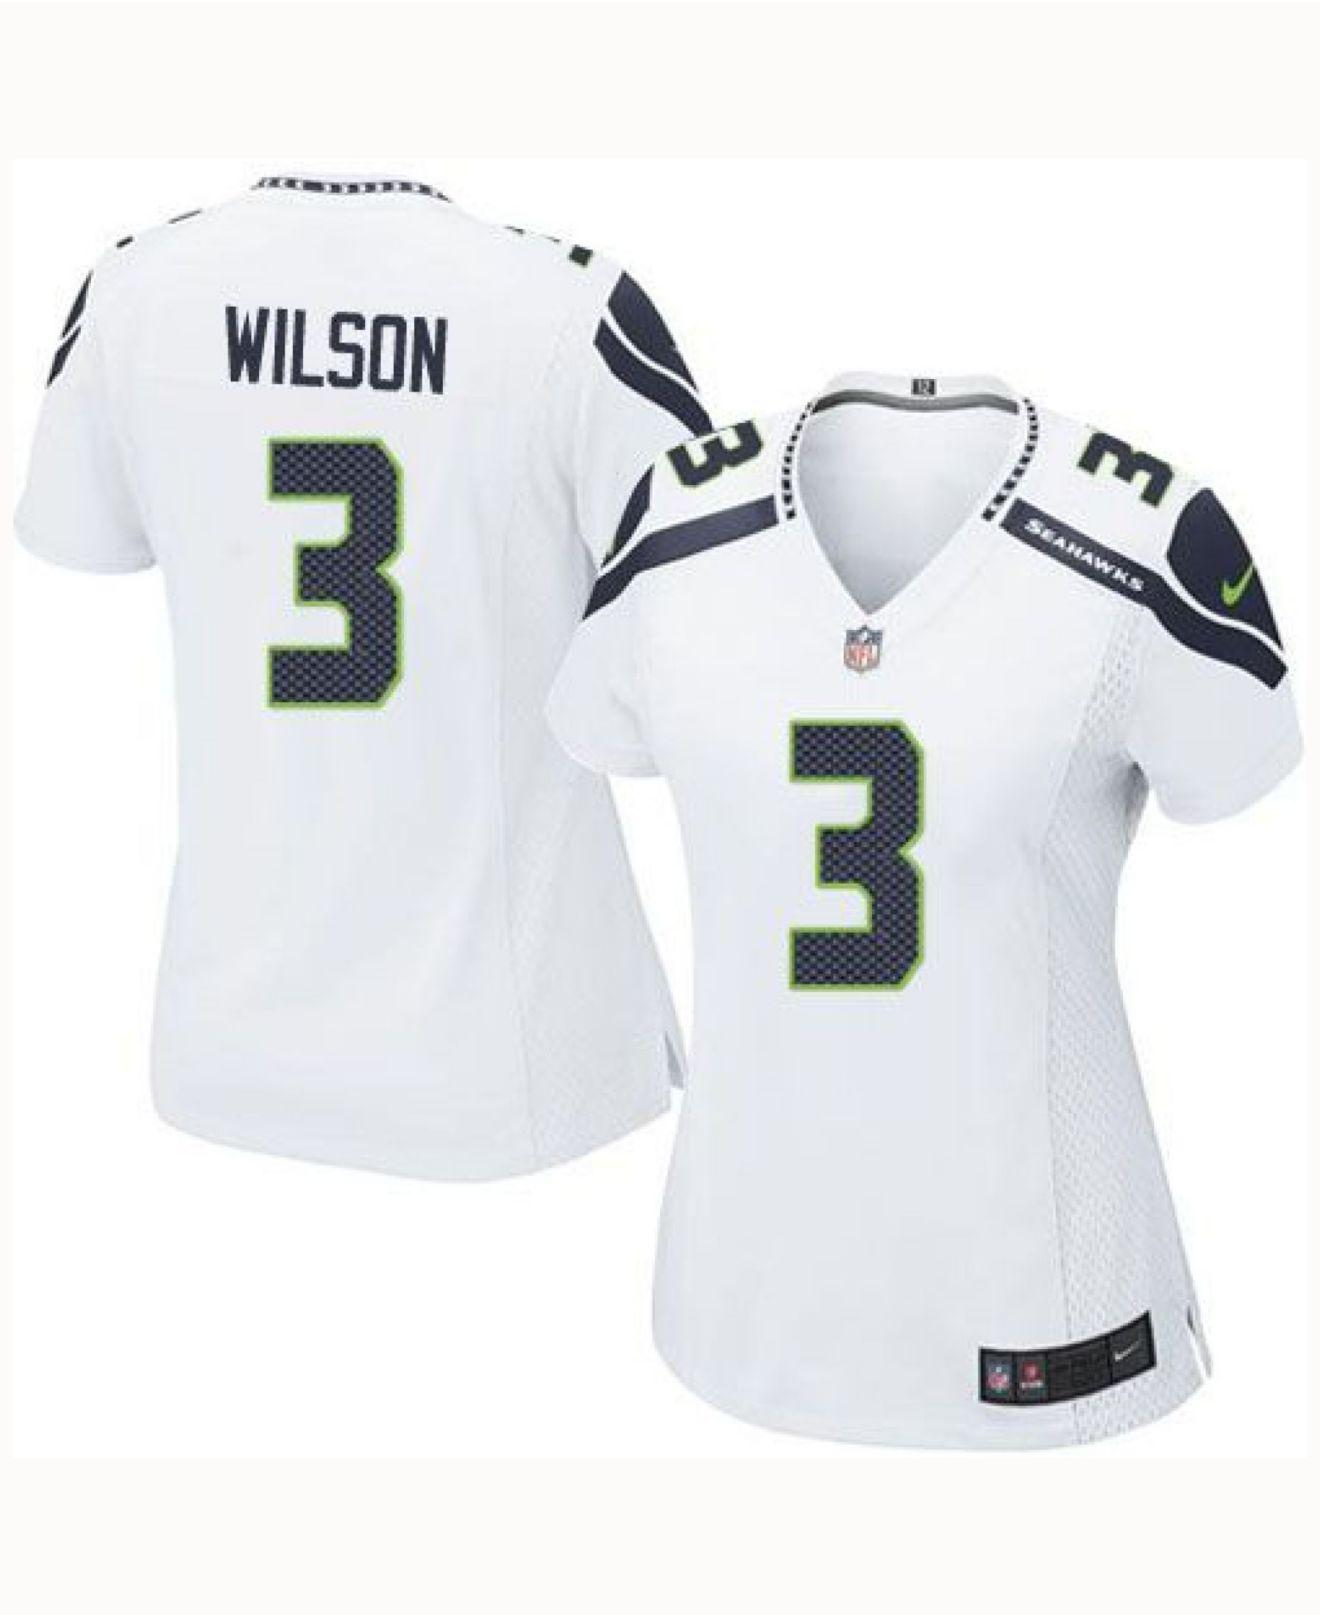 super popular 06957 874af Lyst - Nike Women's Russell Wilson Seattle Seahawks Game ...